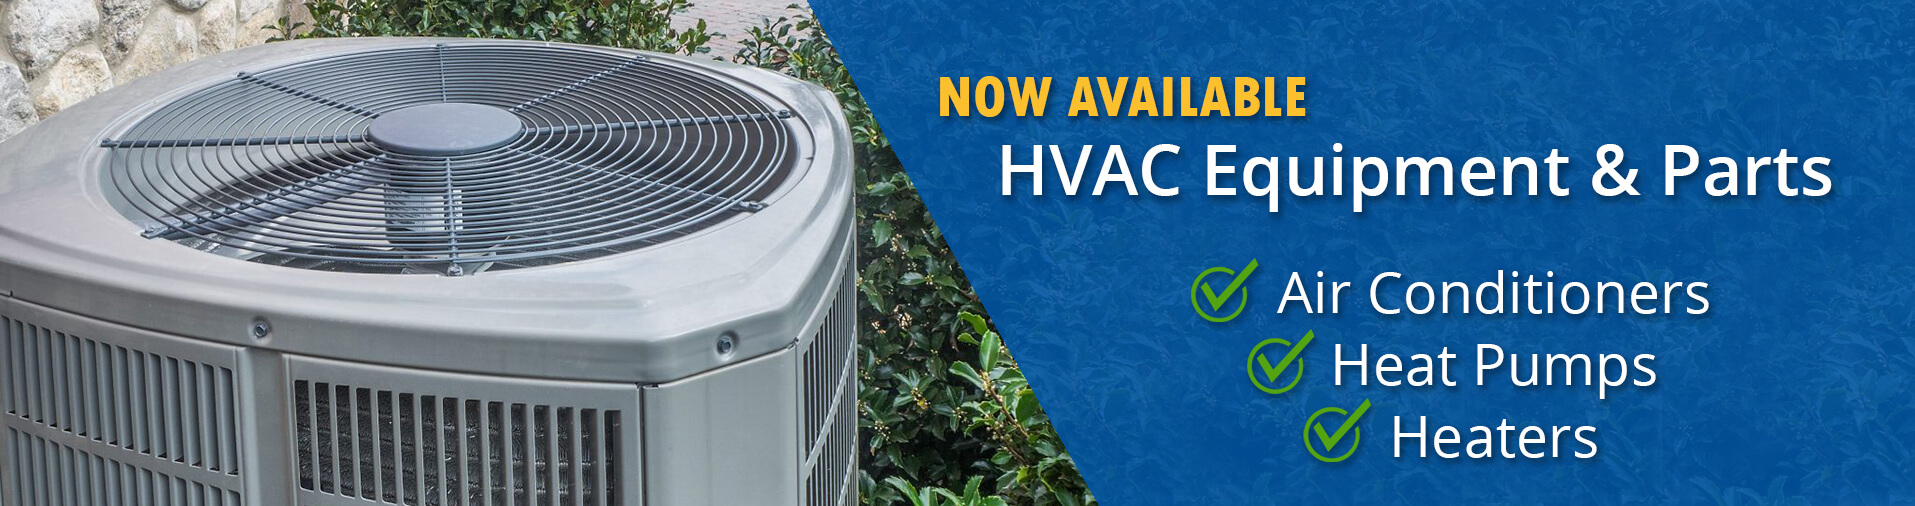 HVAC Air Conditioning and Heater Sales